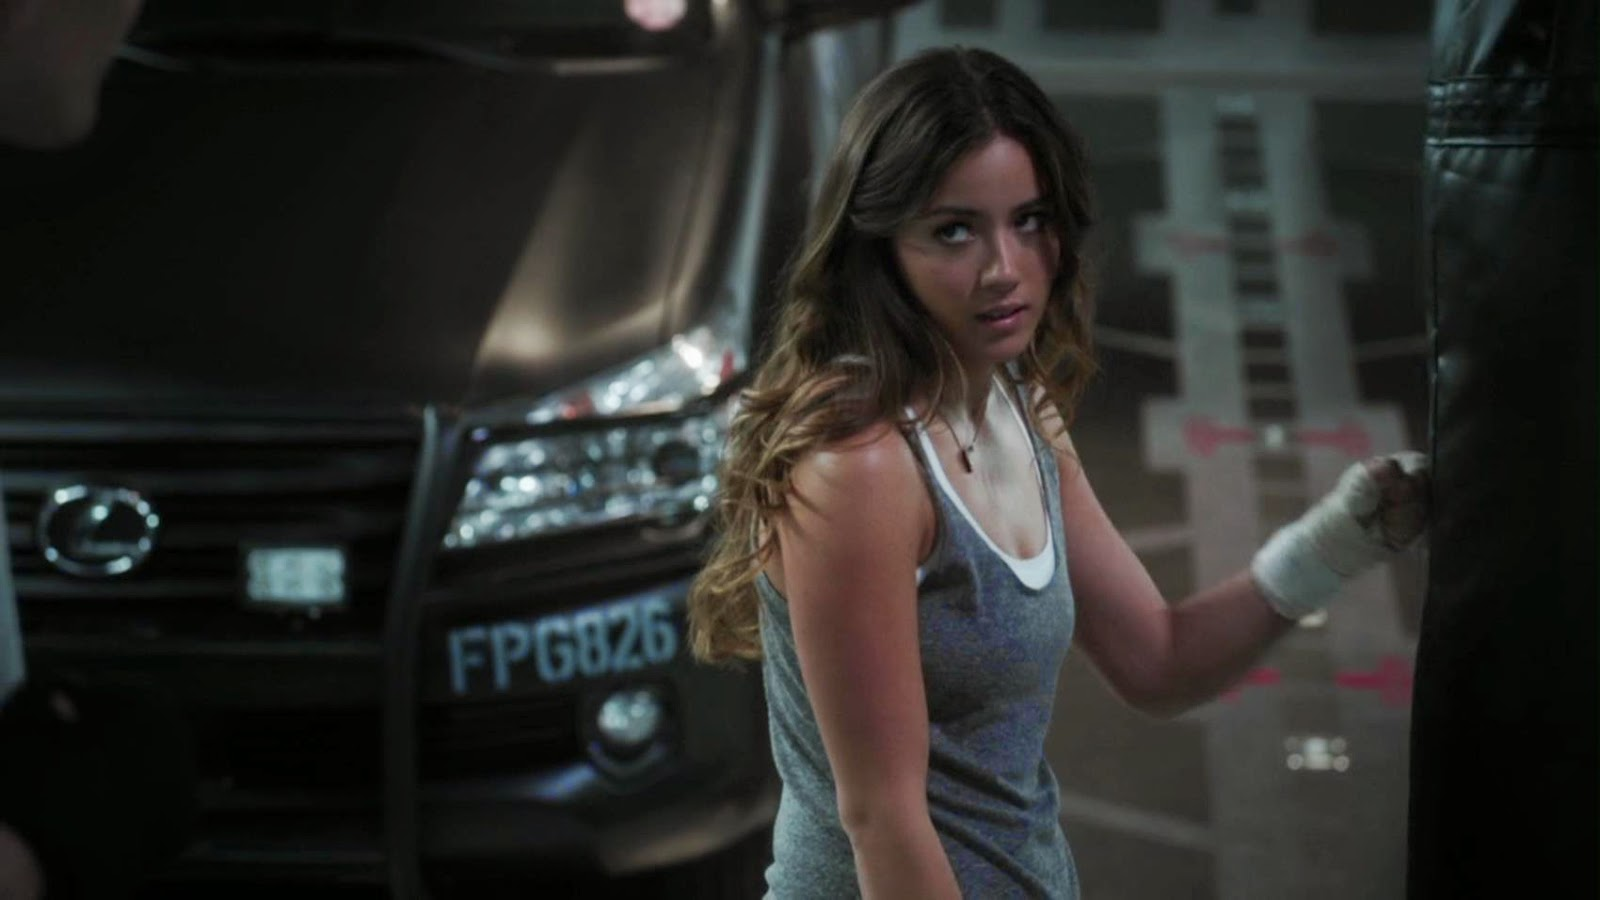 Chloe Bennet is hot